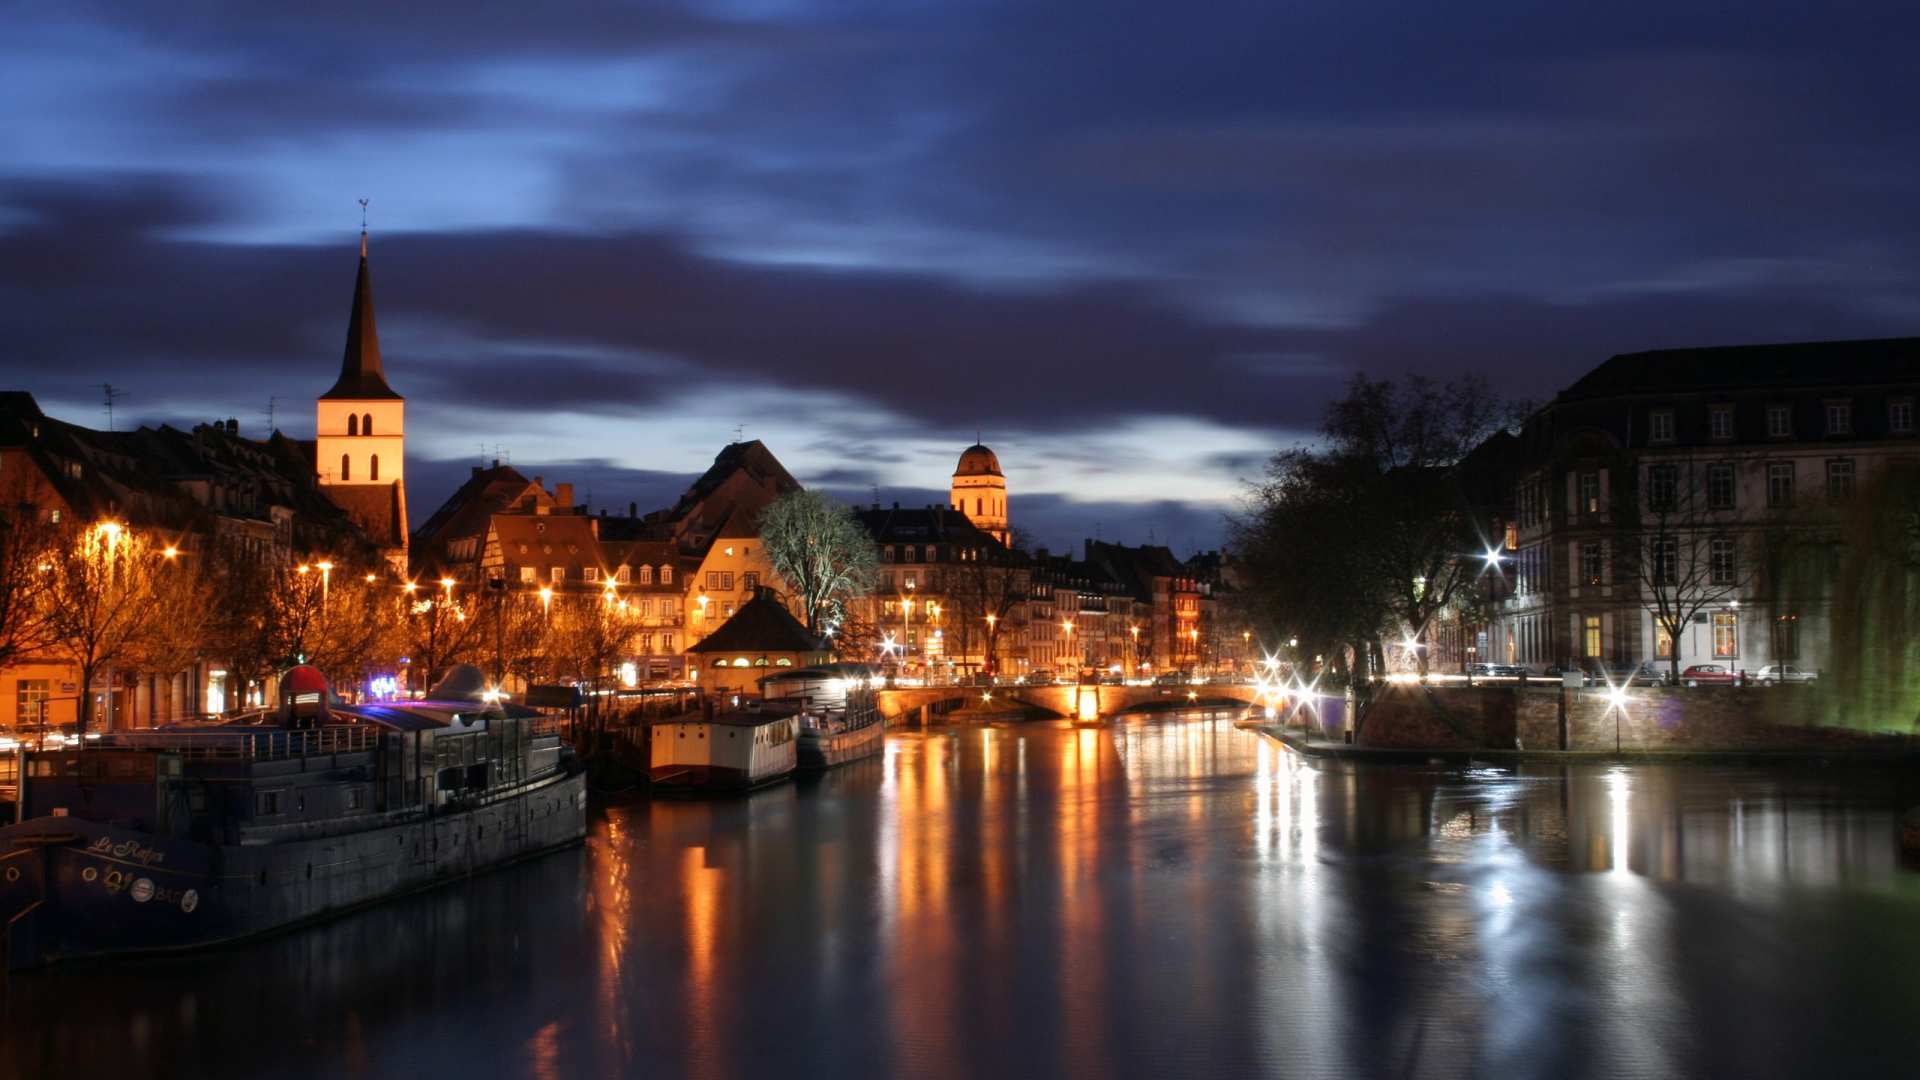 Travel Background Hd Wallpapers Free Niagra Falls Amsterdam At Night Cities